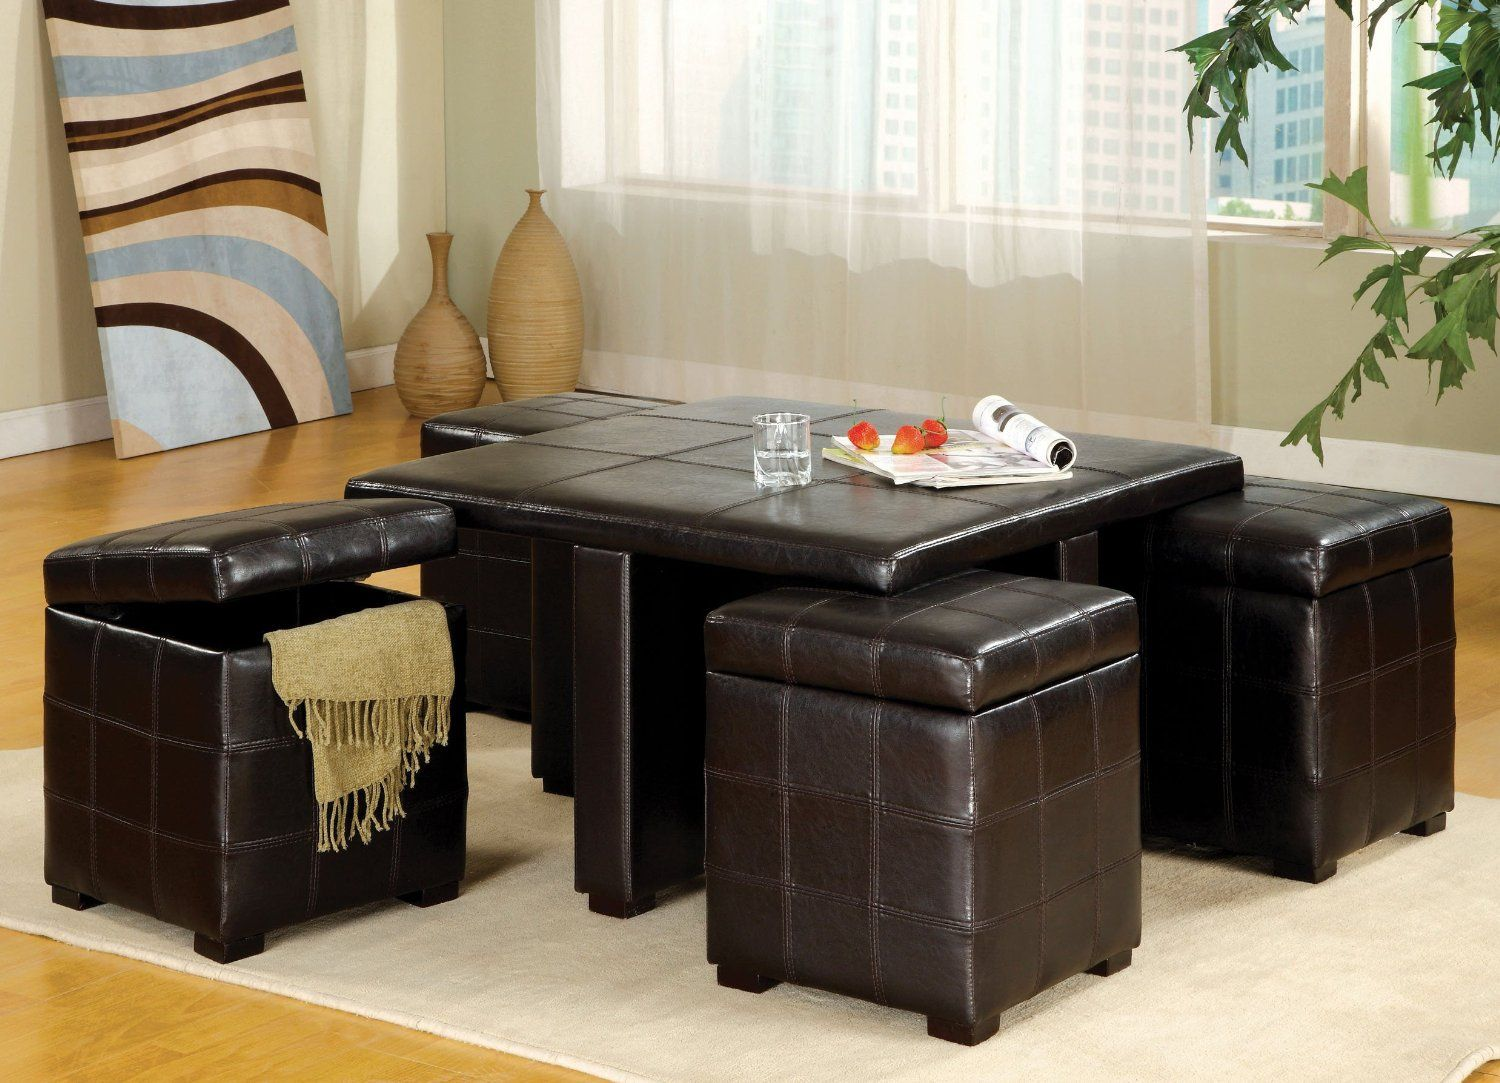 Choose Black Tufted Leather Coffee Table with Ottoman and Stools on White Carpet and Oak Flooring